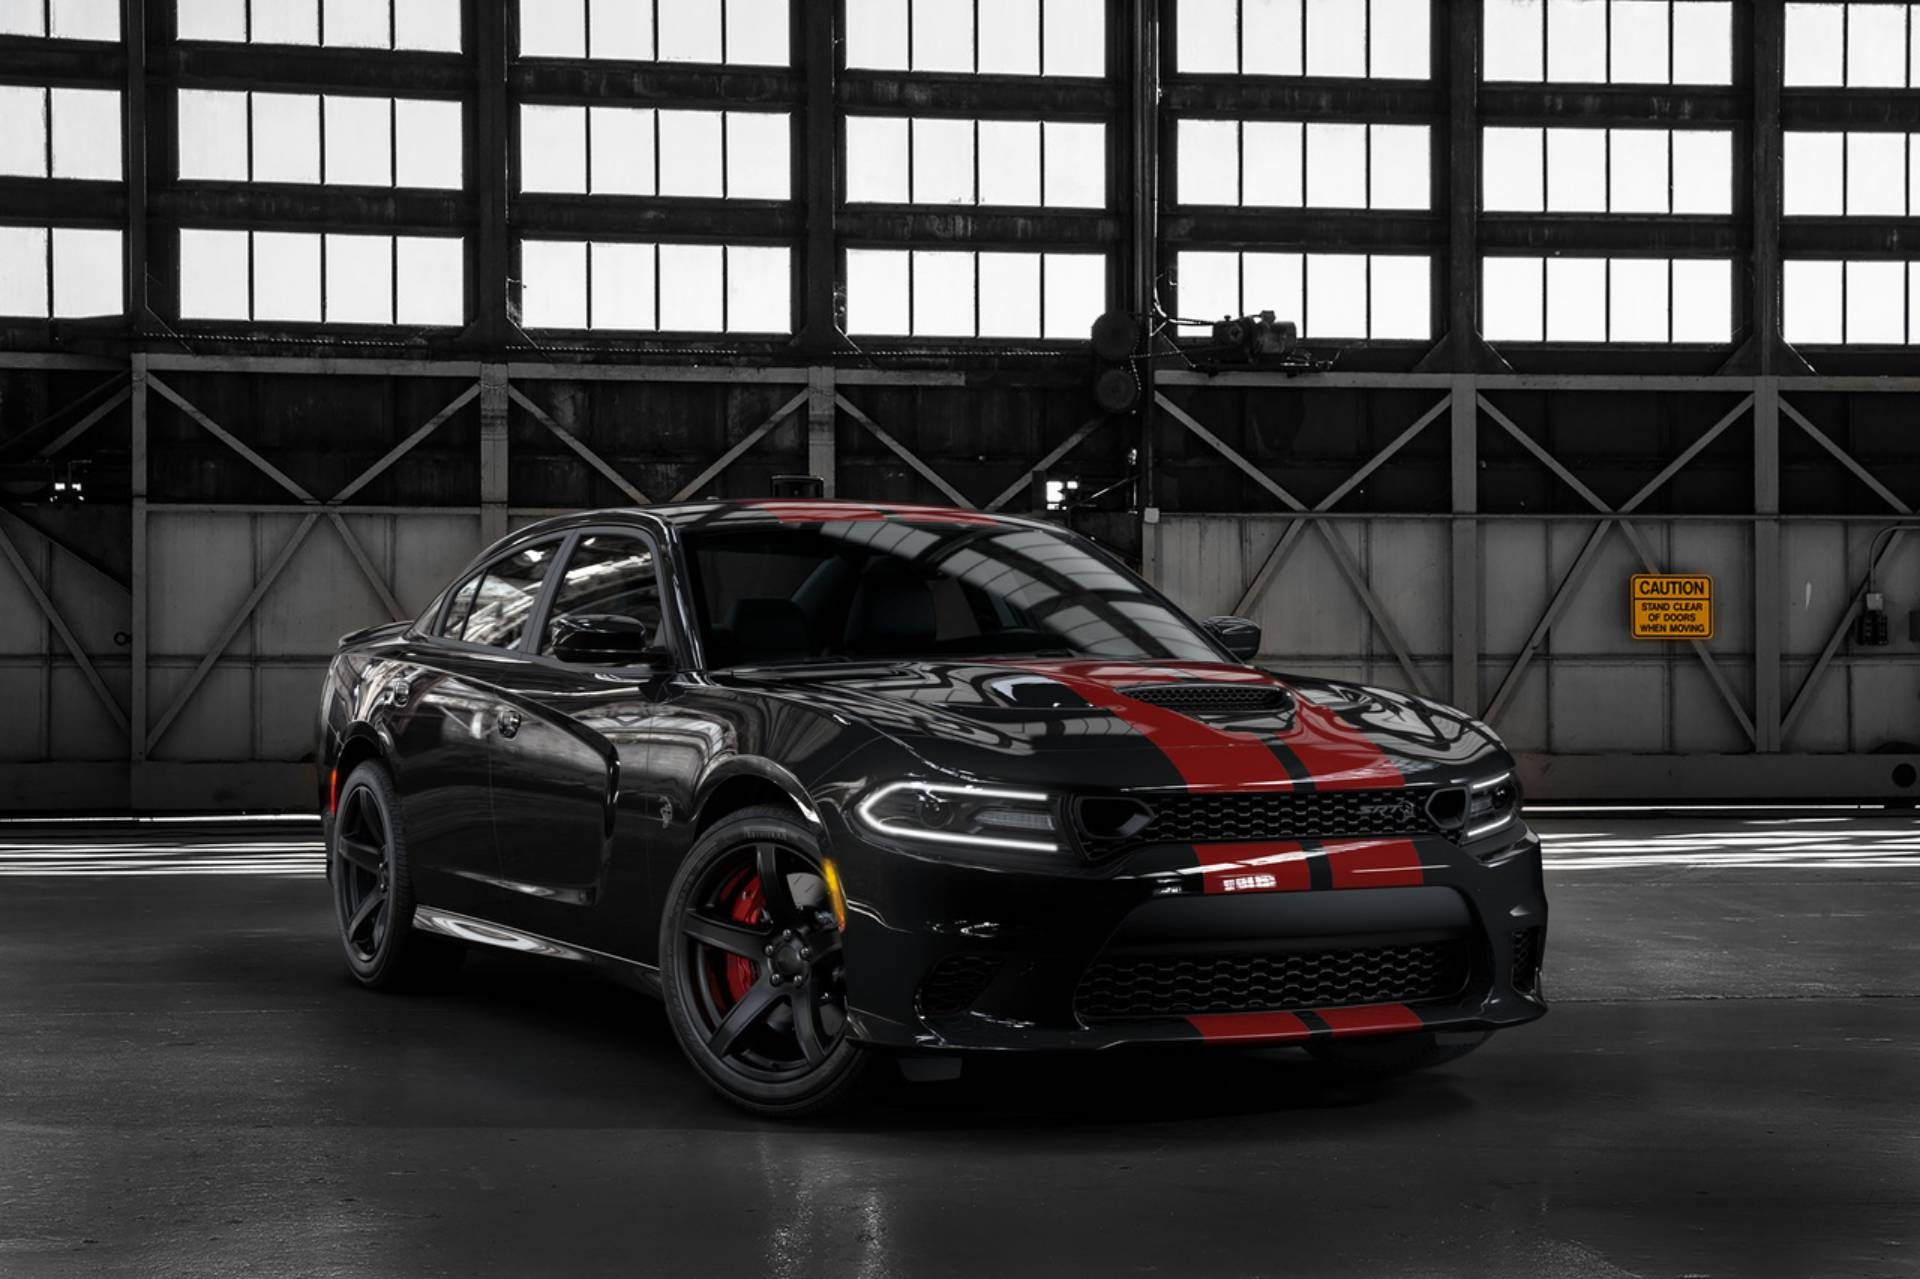 Dodge Confirms Charger Design Concept Is It The Widebody Version Carscoops Dodge Charger Srt Charger Srt Dodge Charger